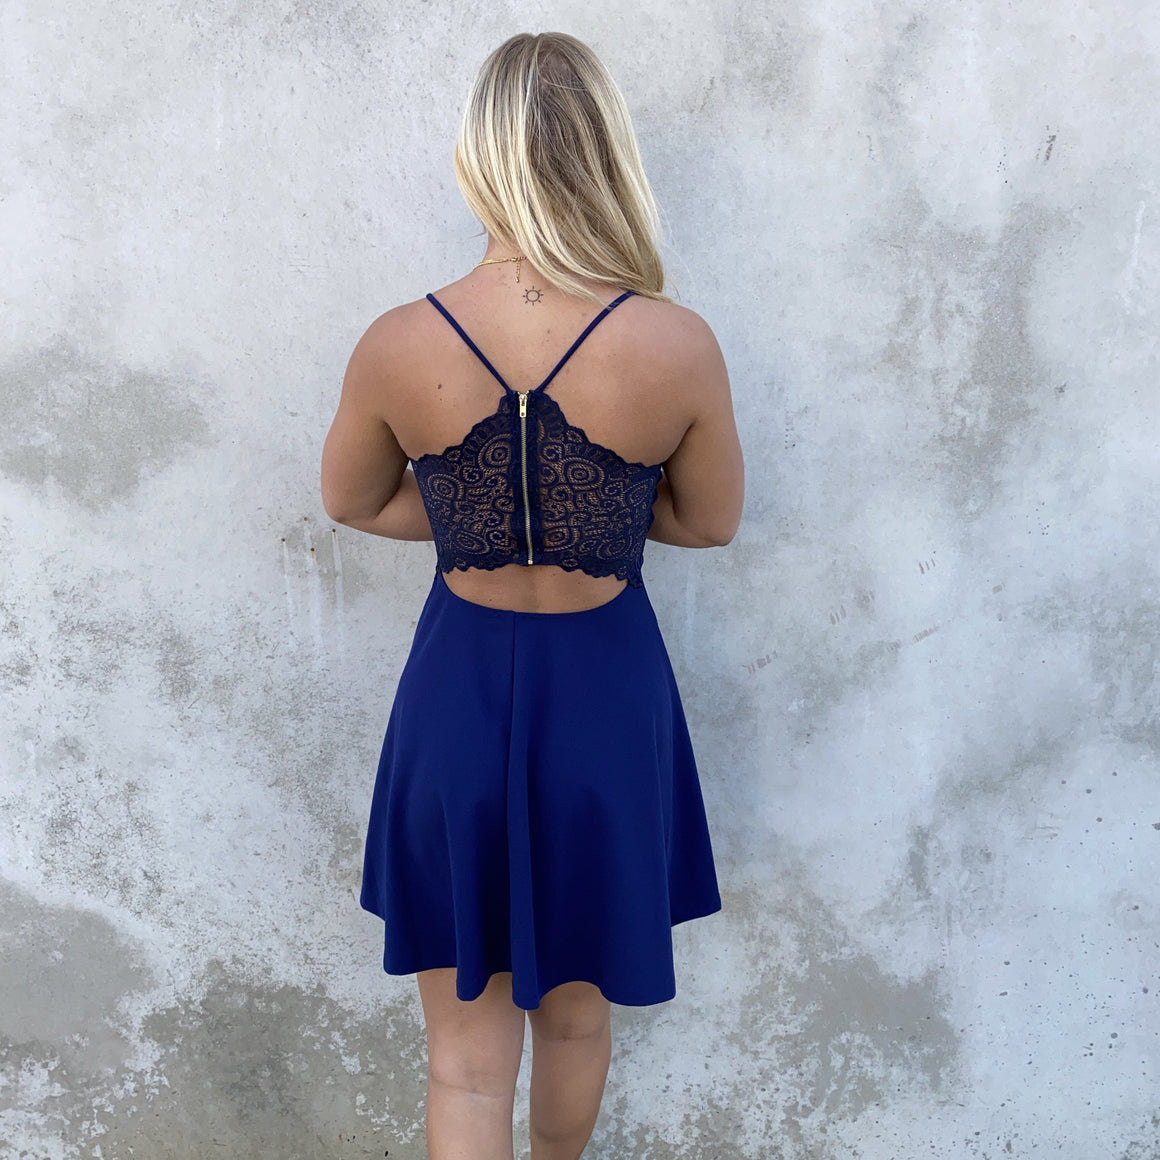 All About Love Navy Skater Dress - Dainty Hooligan